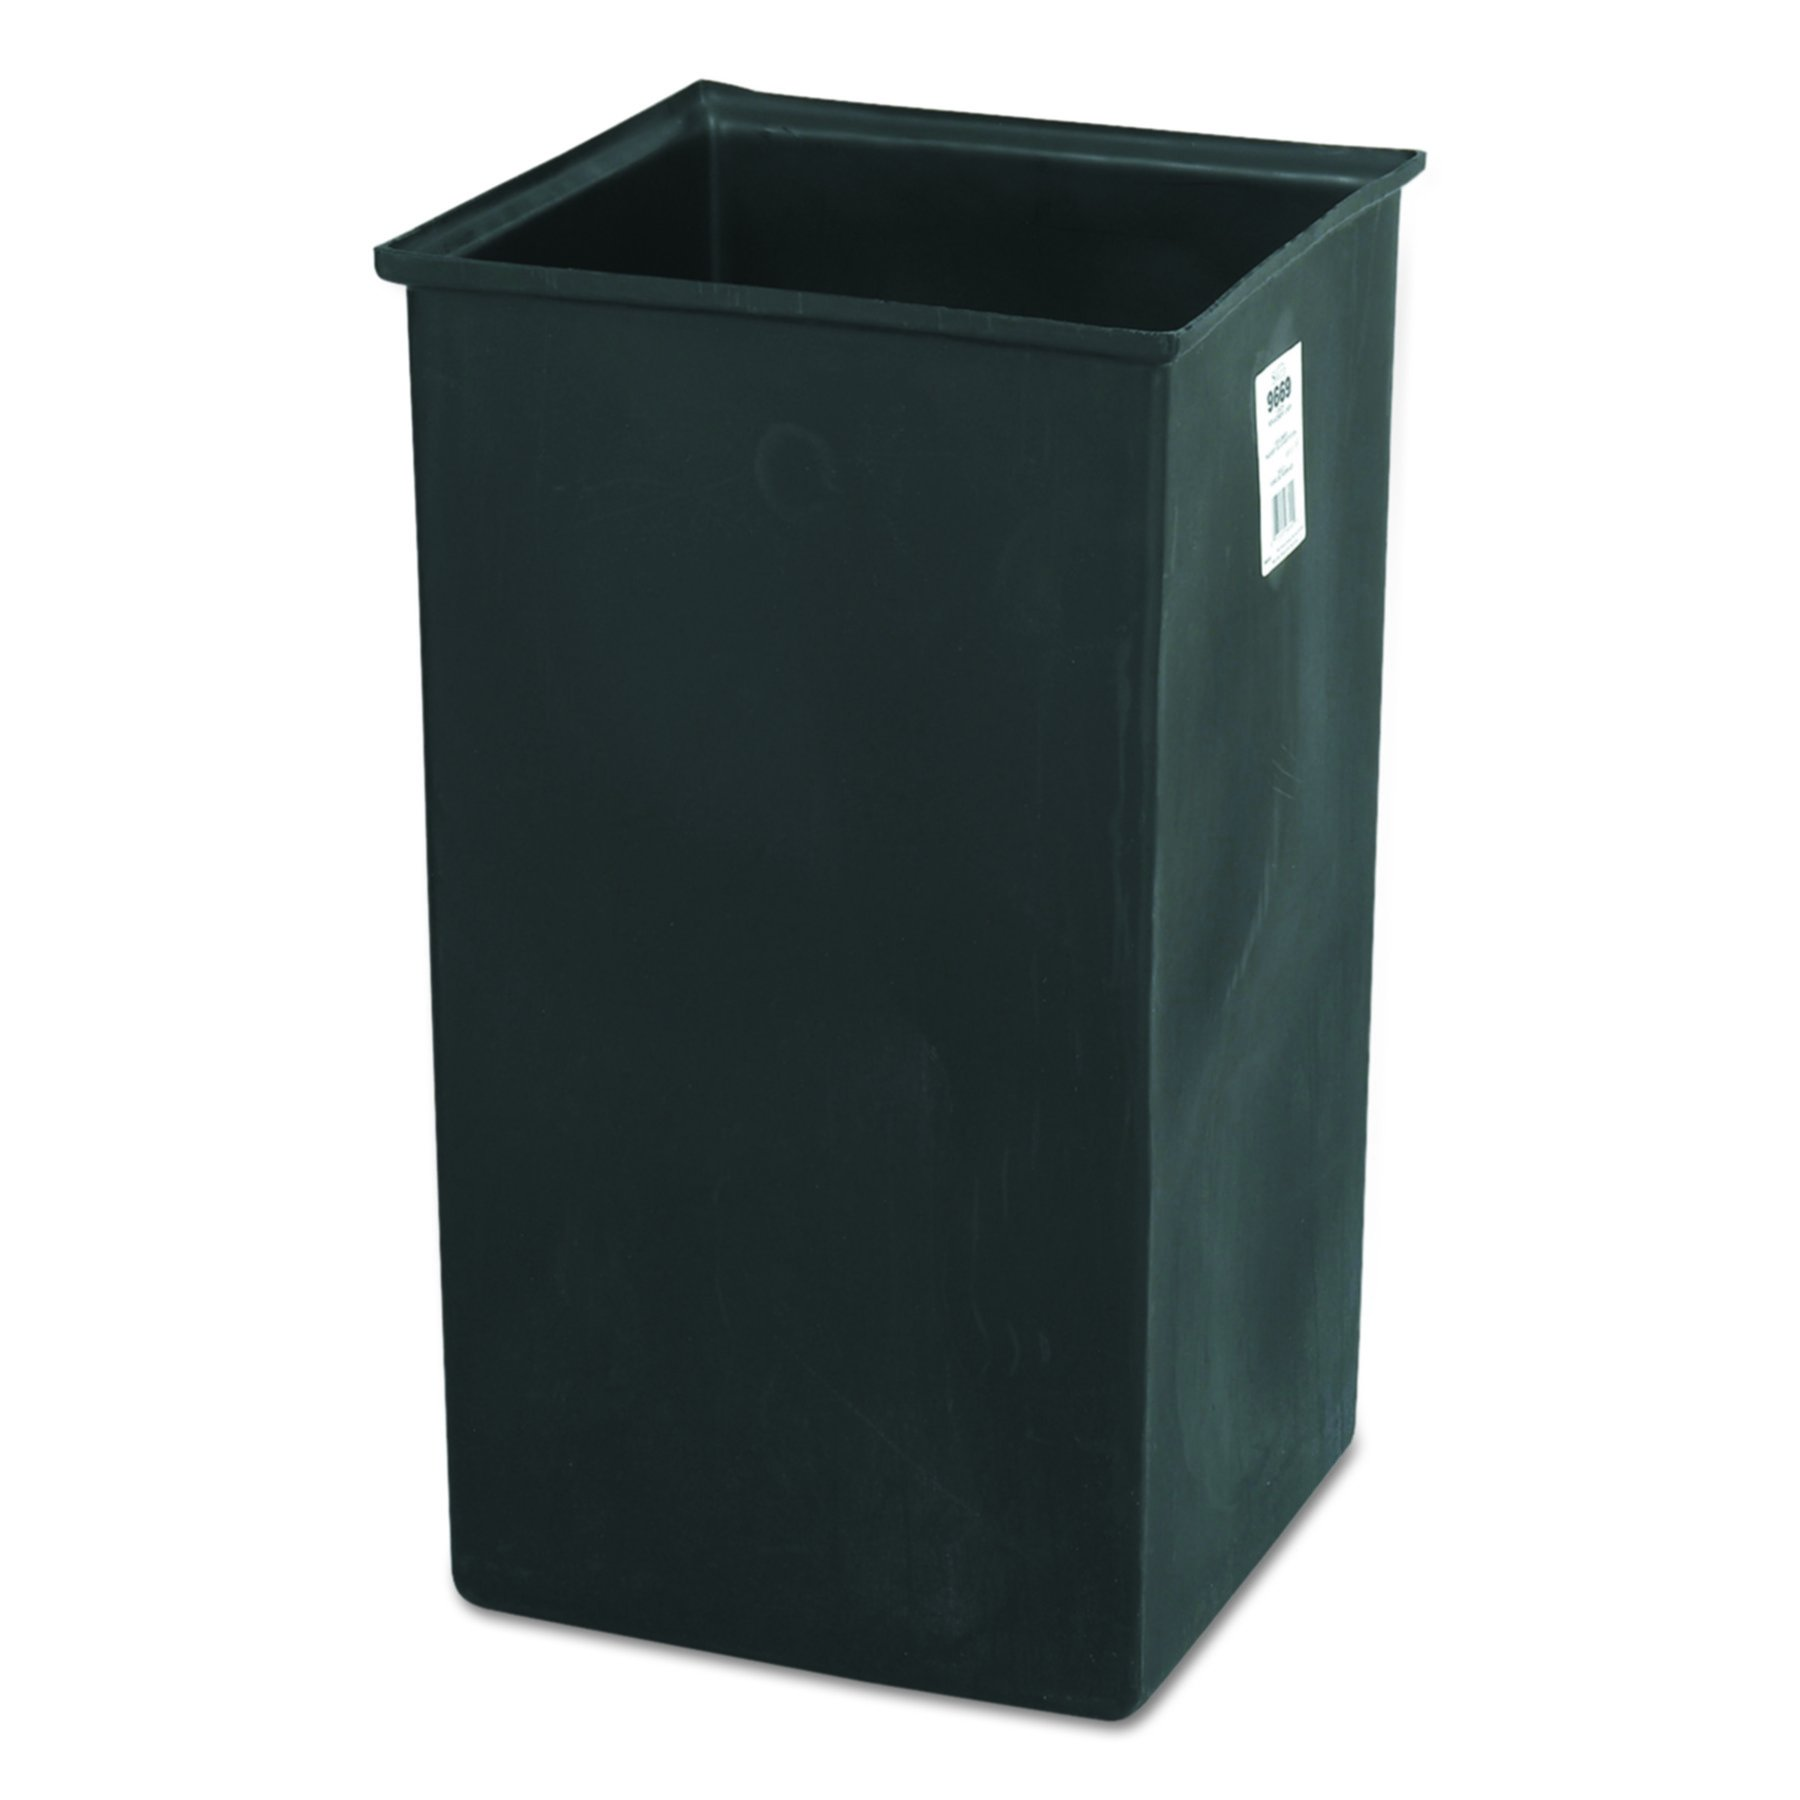 Safco Products 36 Gallon Plastic Liner 9969, for use with Safco Push Top Receptacle, 36-Gallon Capacity